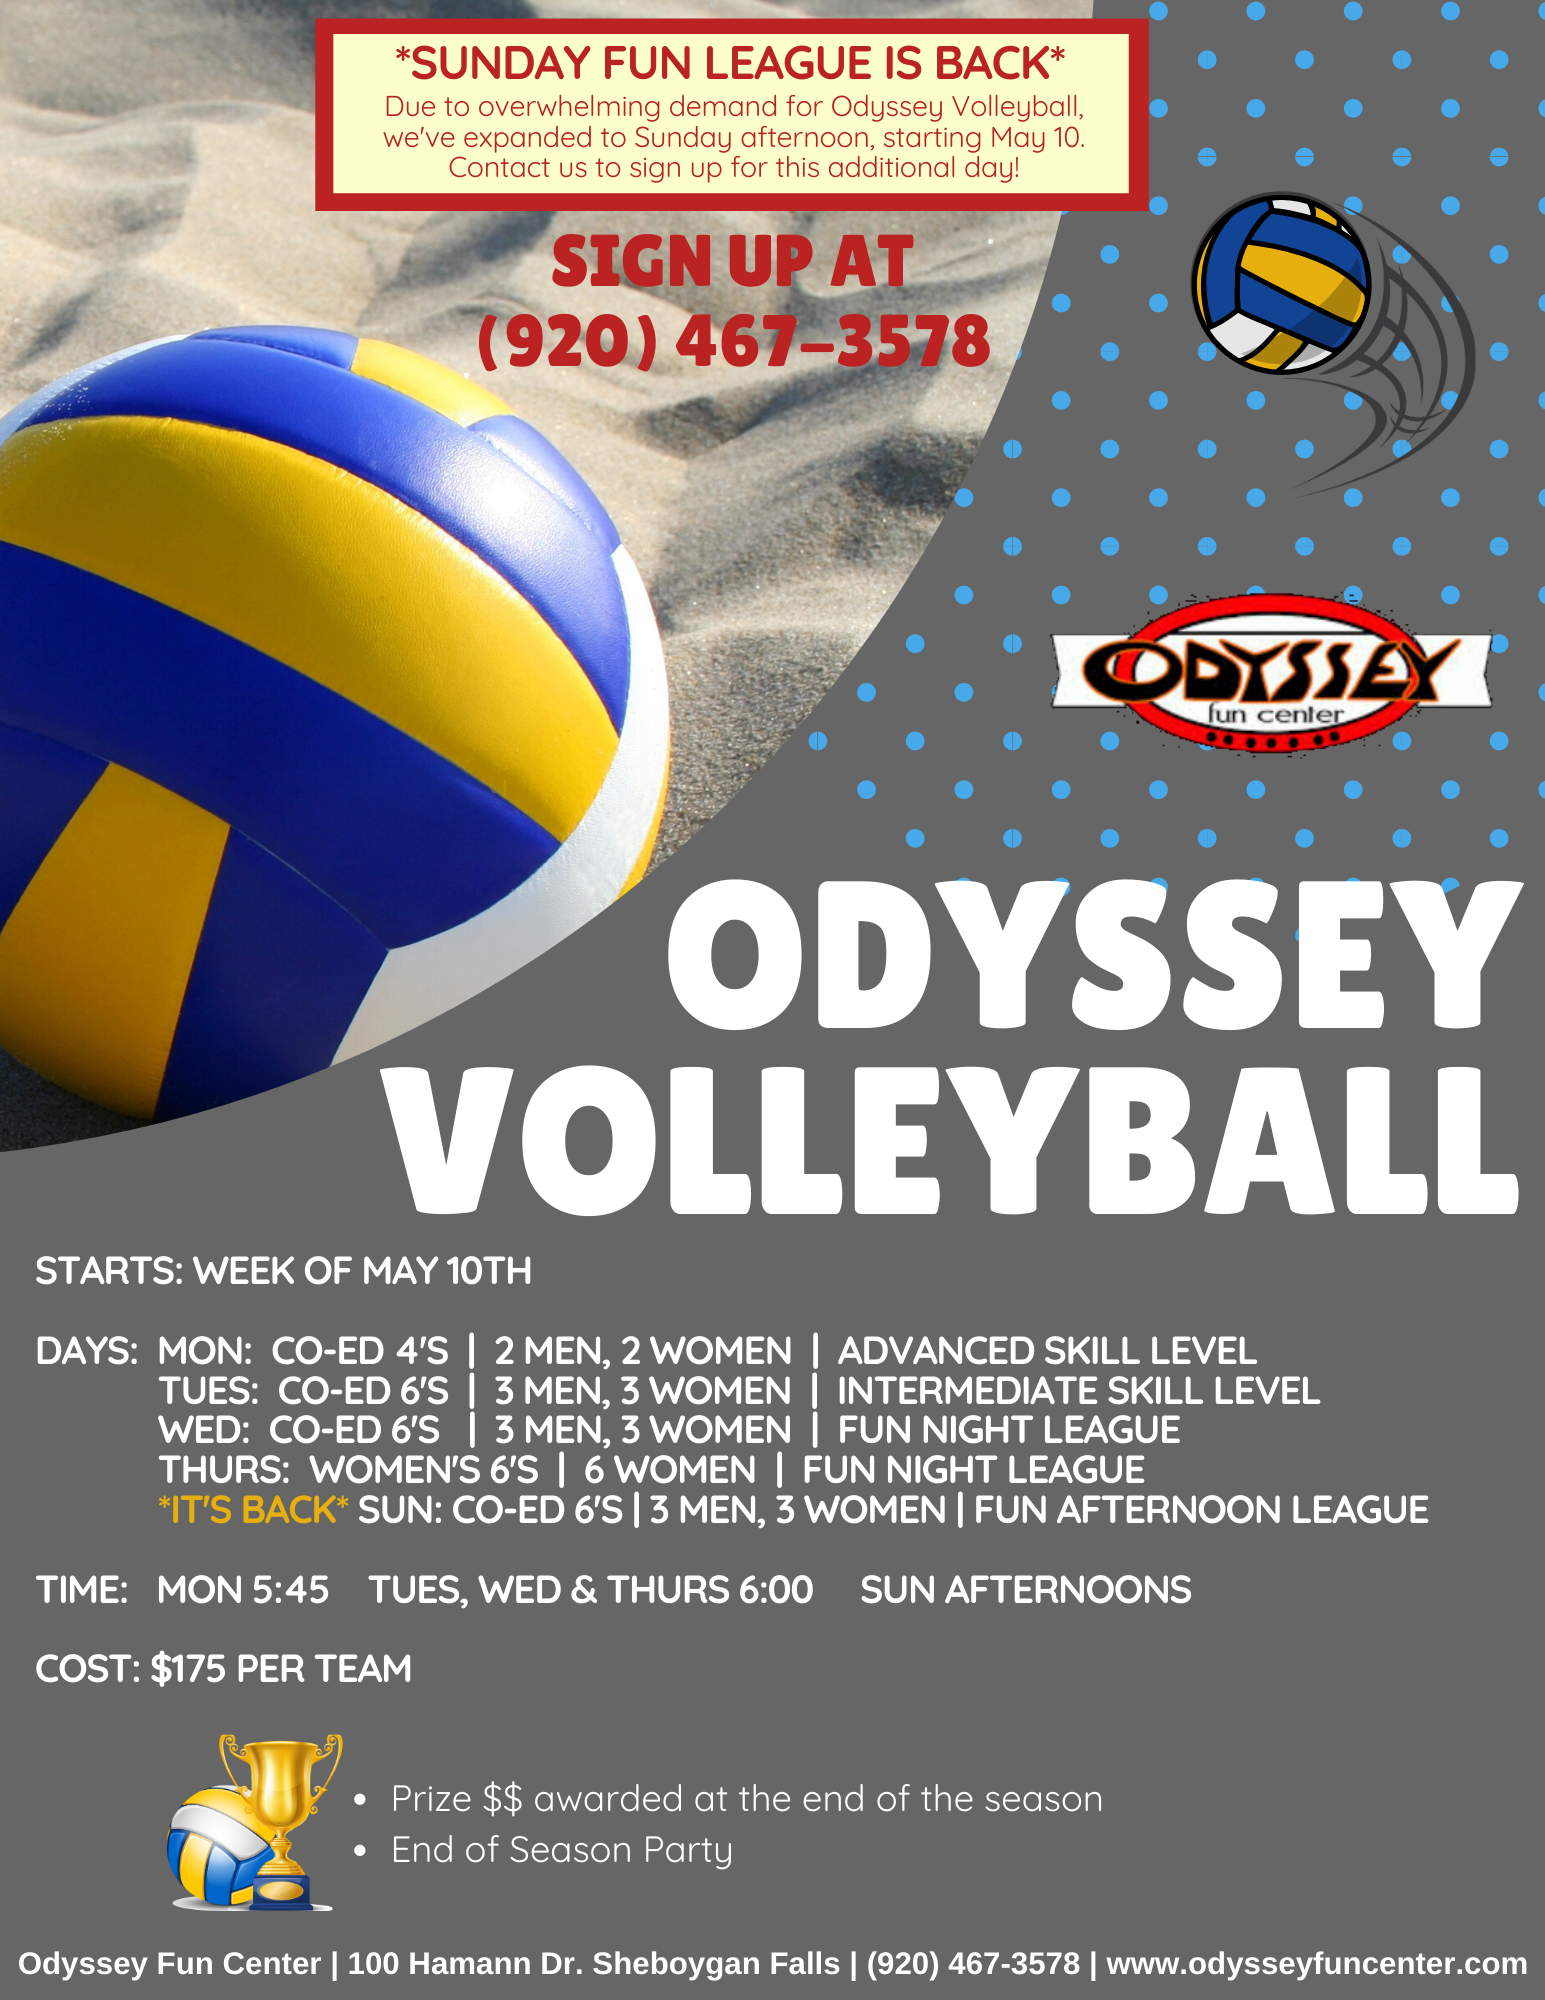 odyssey volleyball leagues 2020 | summer volleyball at odyssey fun center | competitive volleyball leagues | casual volleyball leagues | odyssey fun center | sheboygan, wi